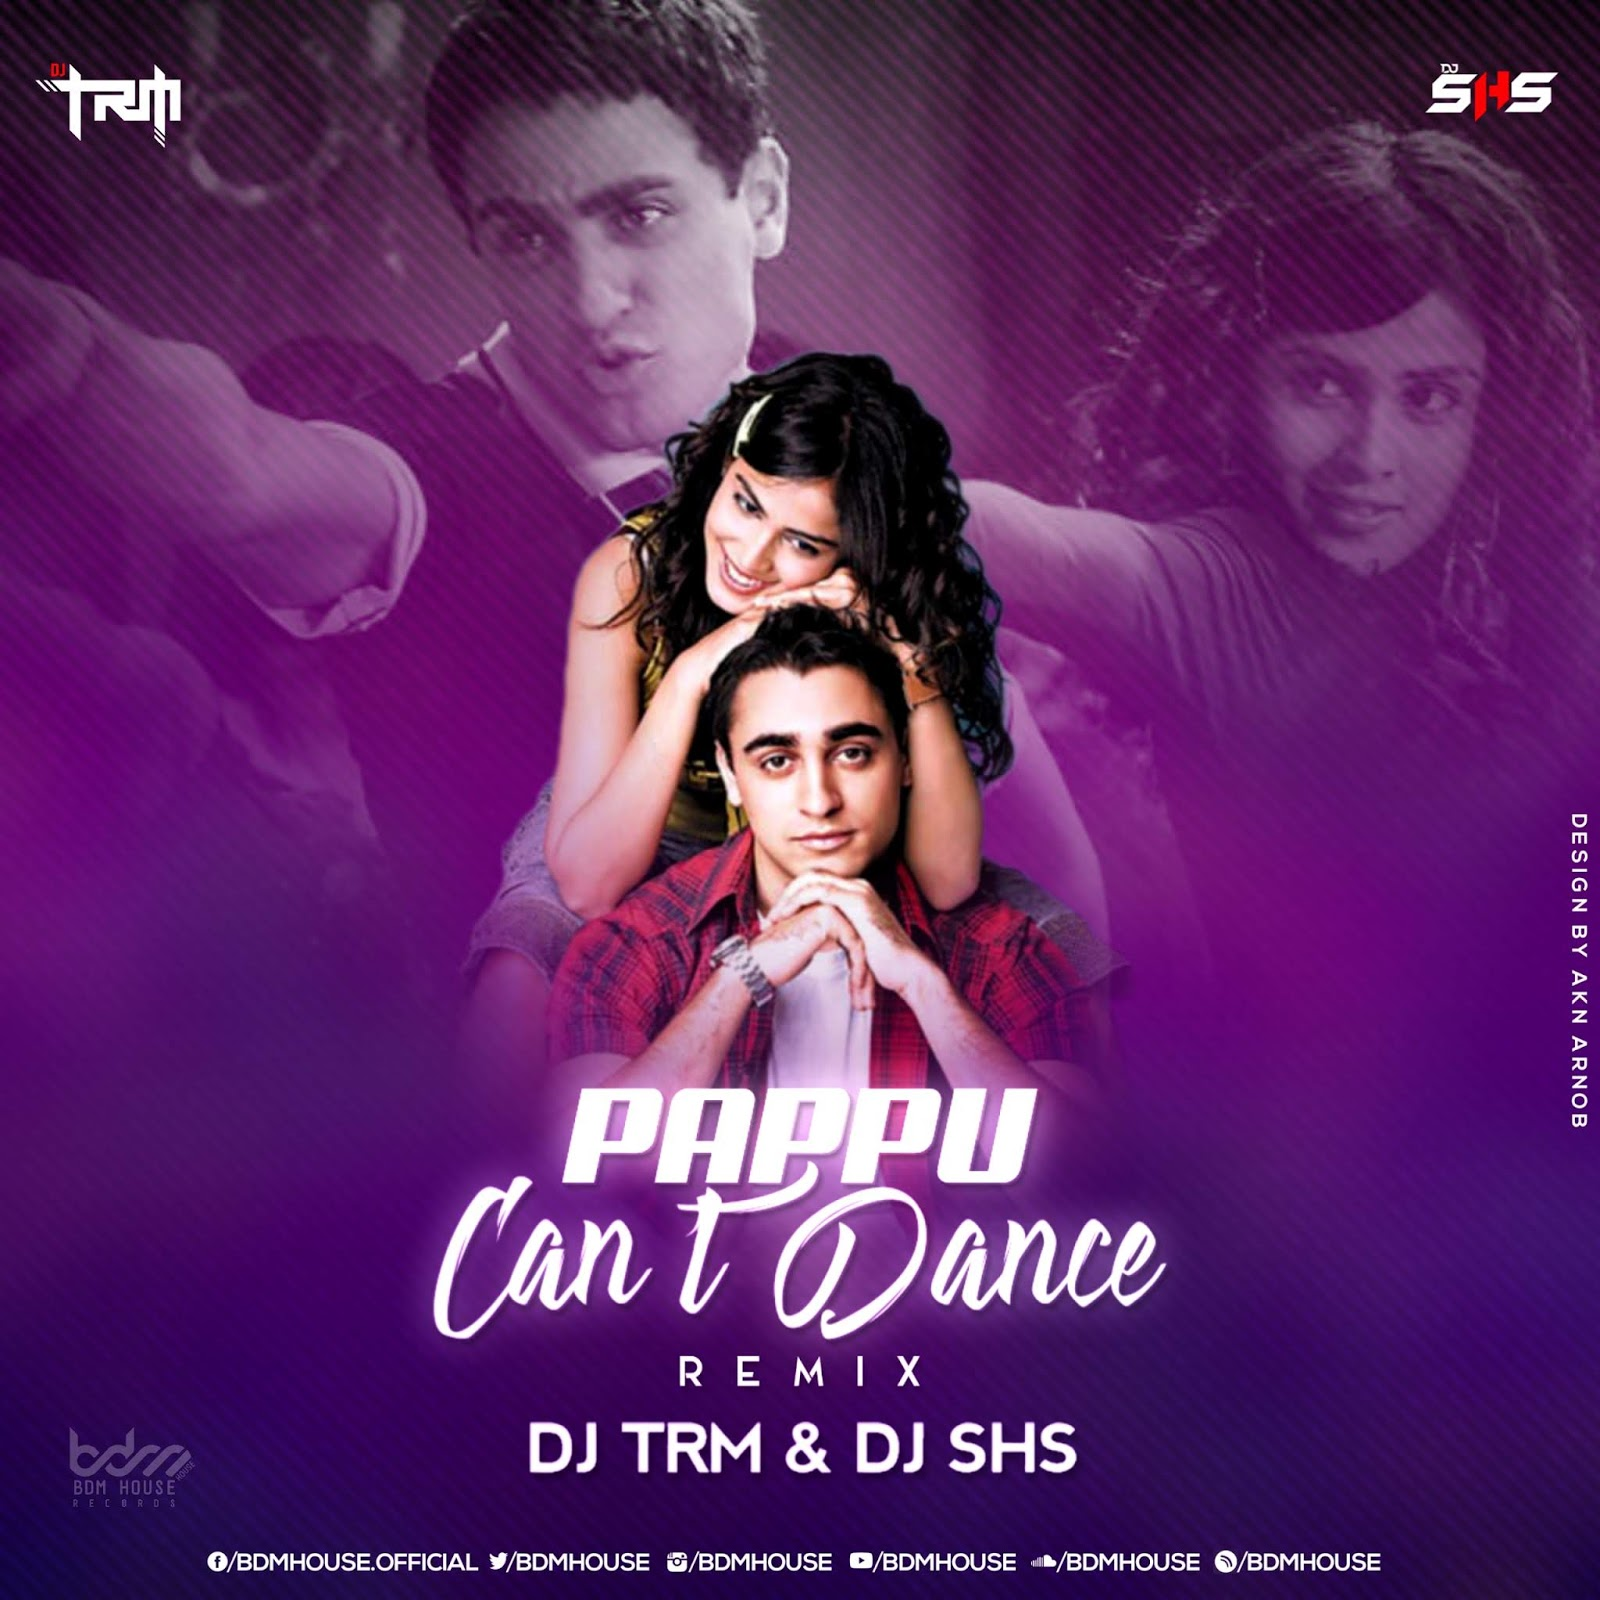 PAPPU CAN'T DANCE (REMIX) DJ TRM x DJ SHS BY BDM HOUSE RECORDS